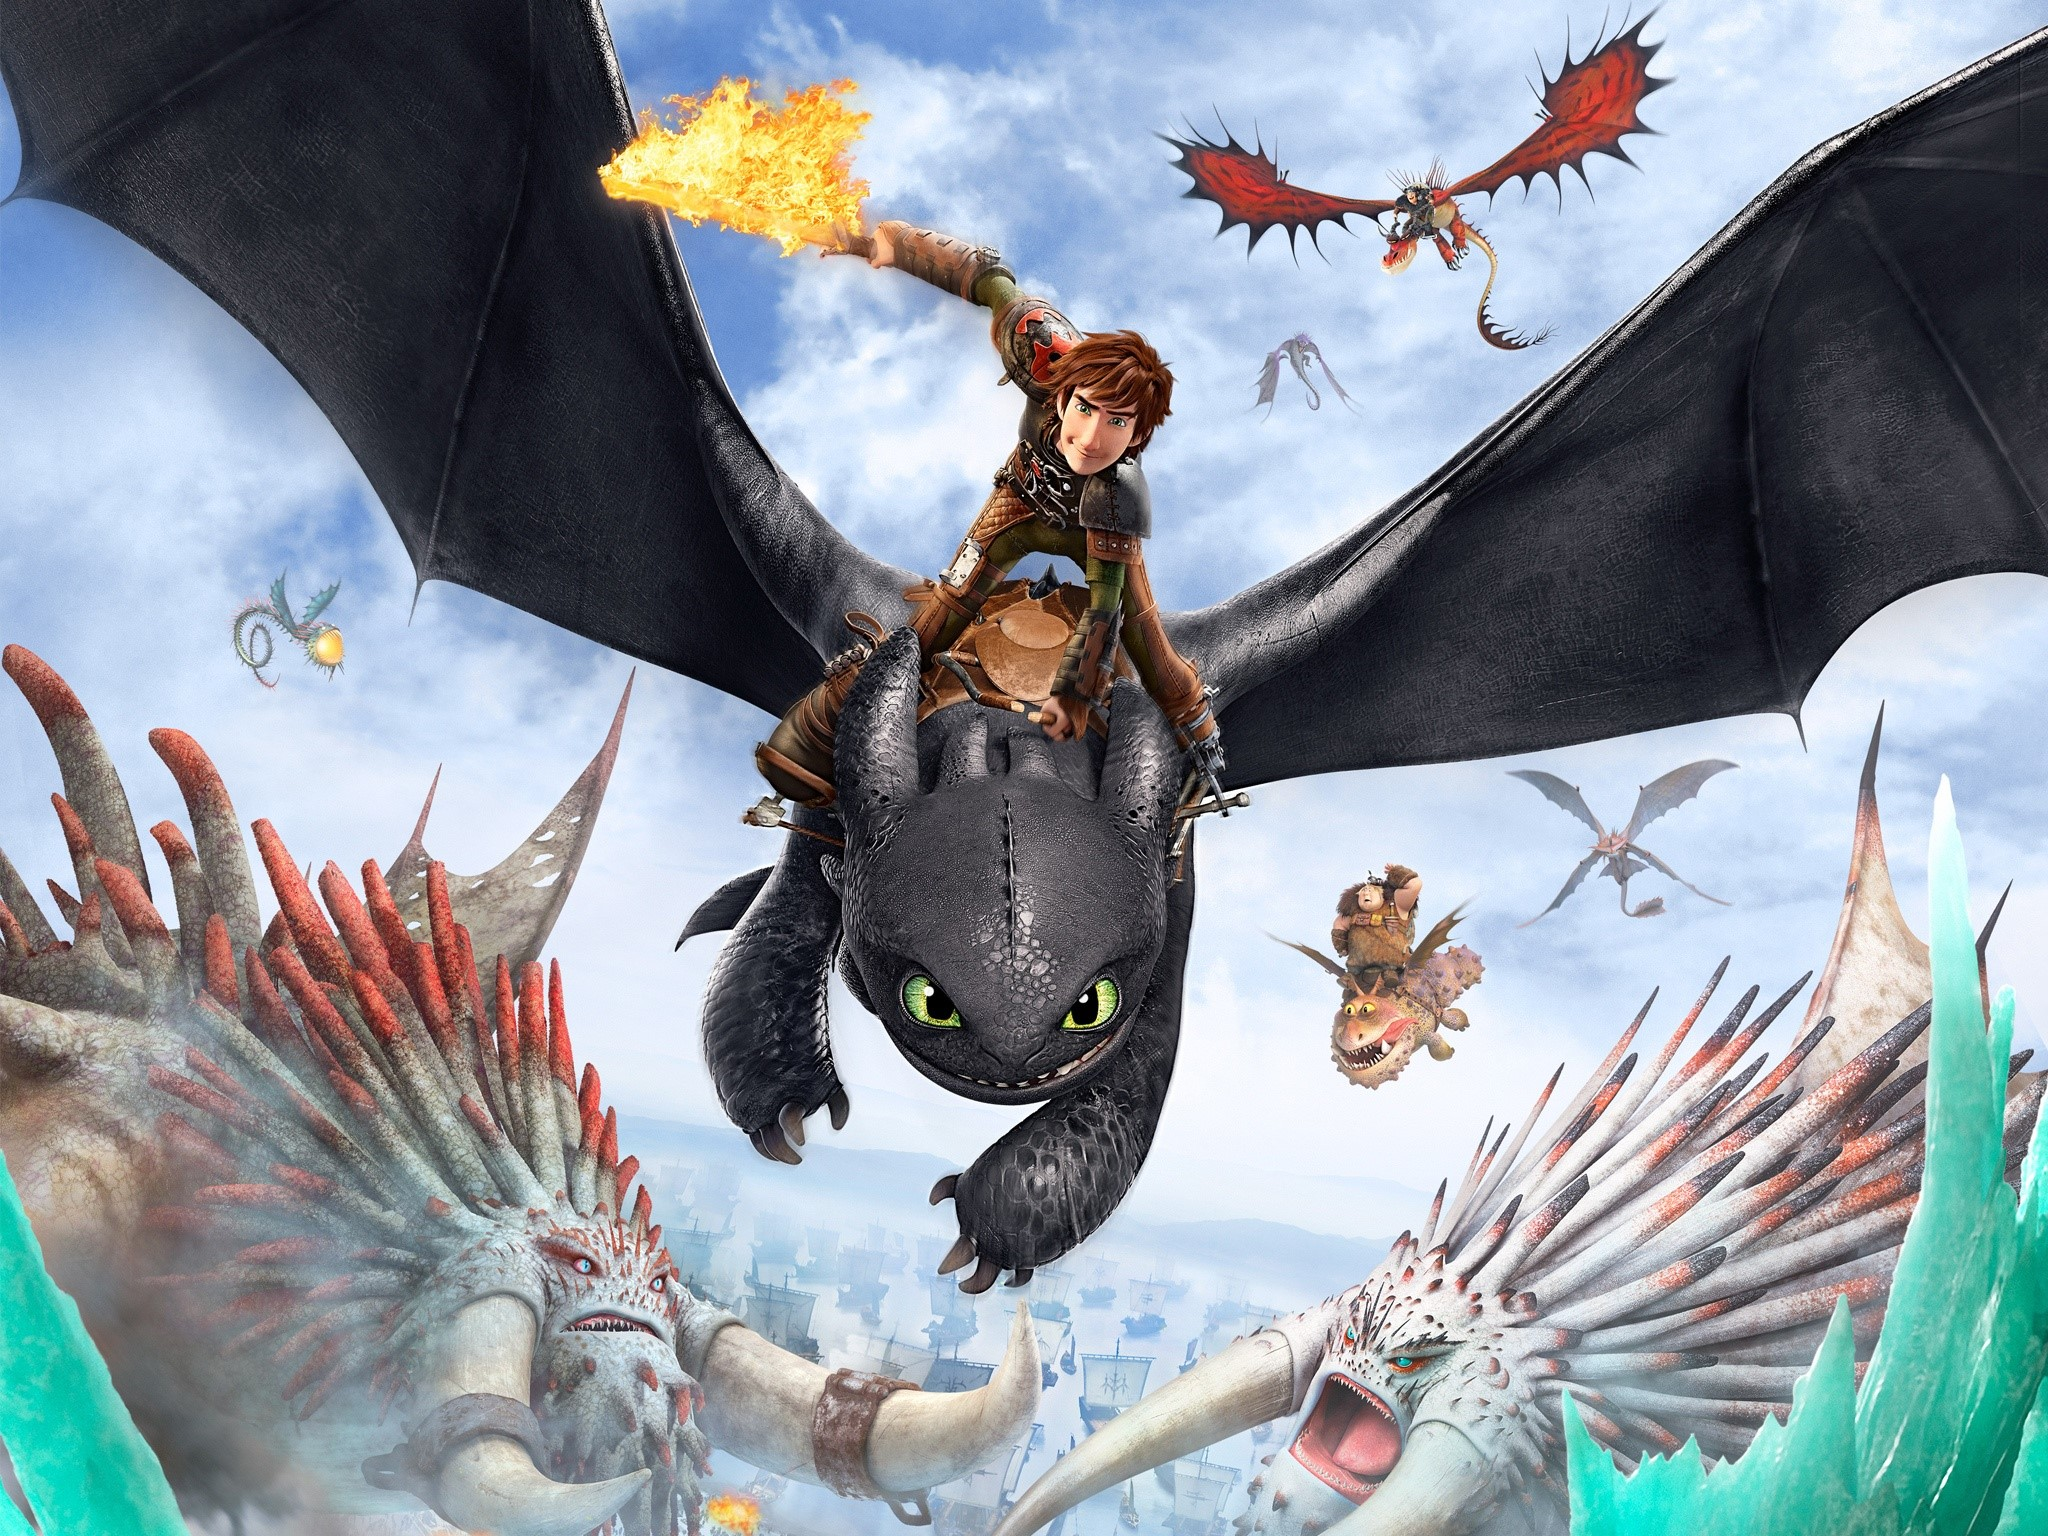 Wallpaper Poster of How to train your dragon